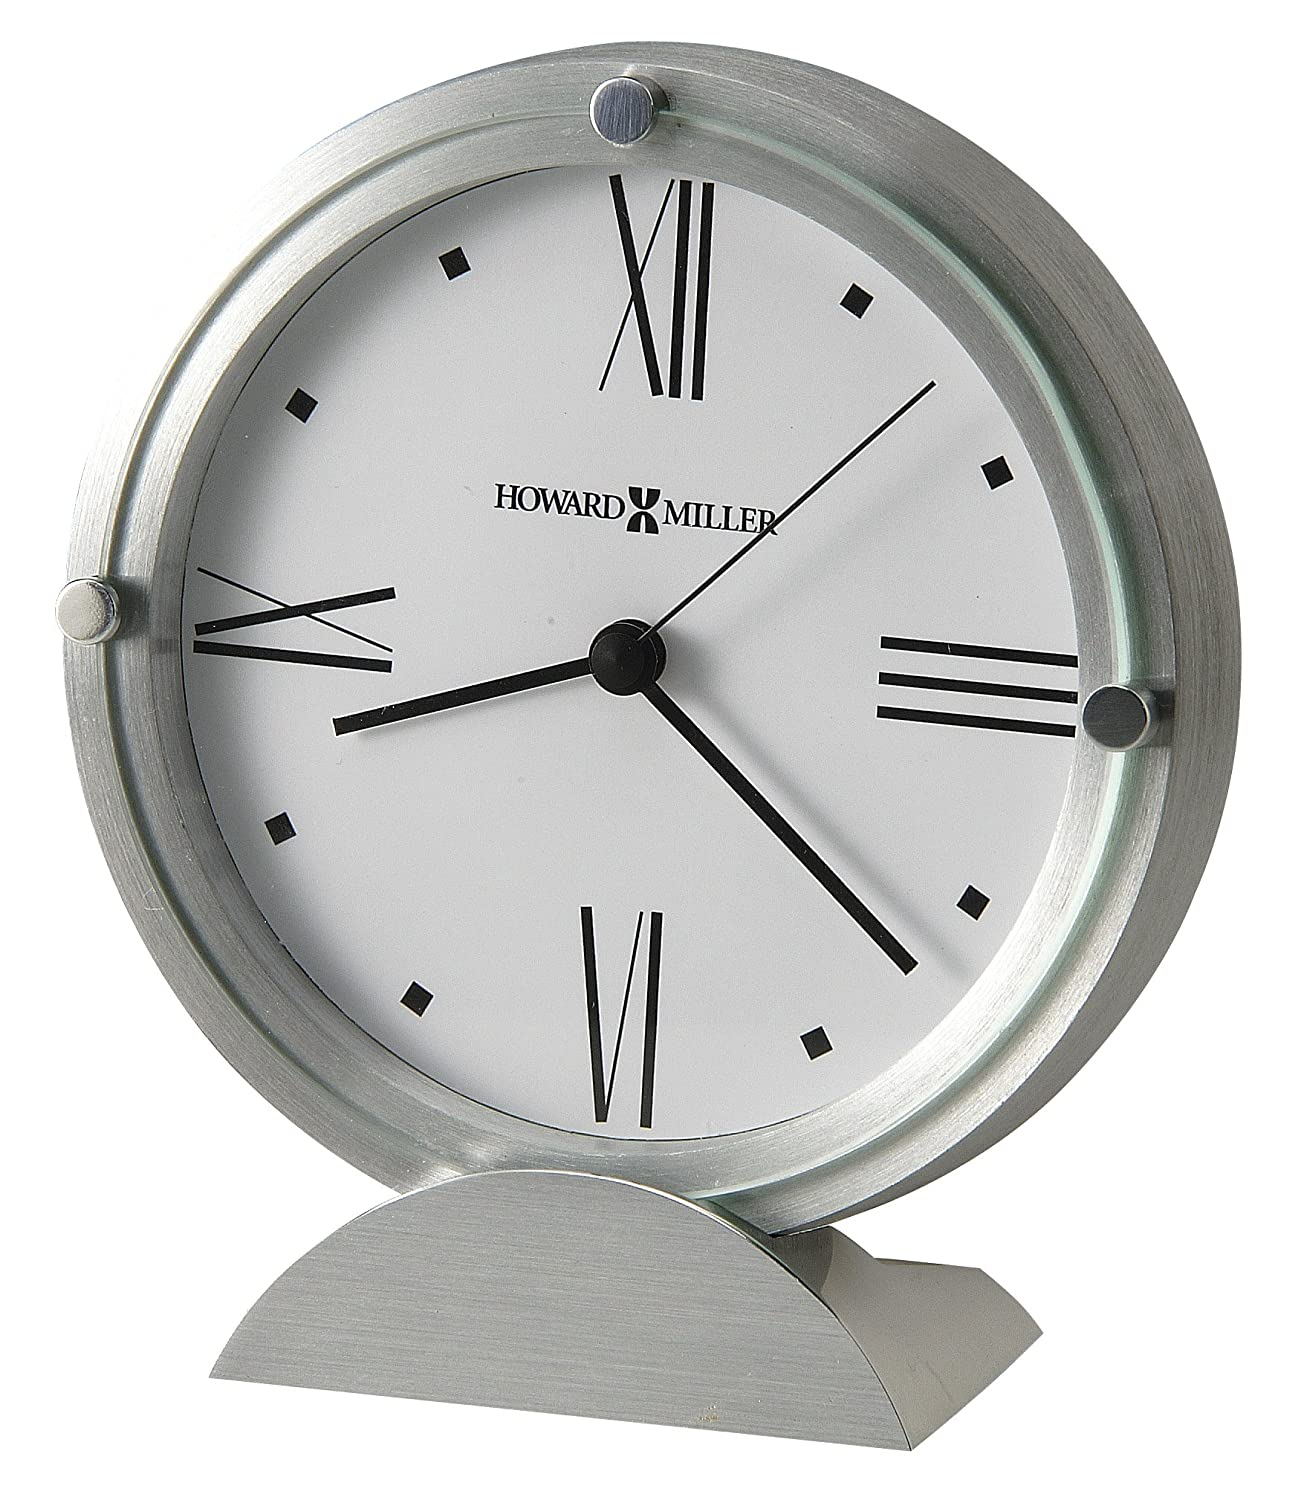 Amazon.com: Howard Miller 645 671 Simon II Table Clock By: Home U0026 Kitchen